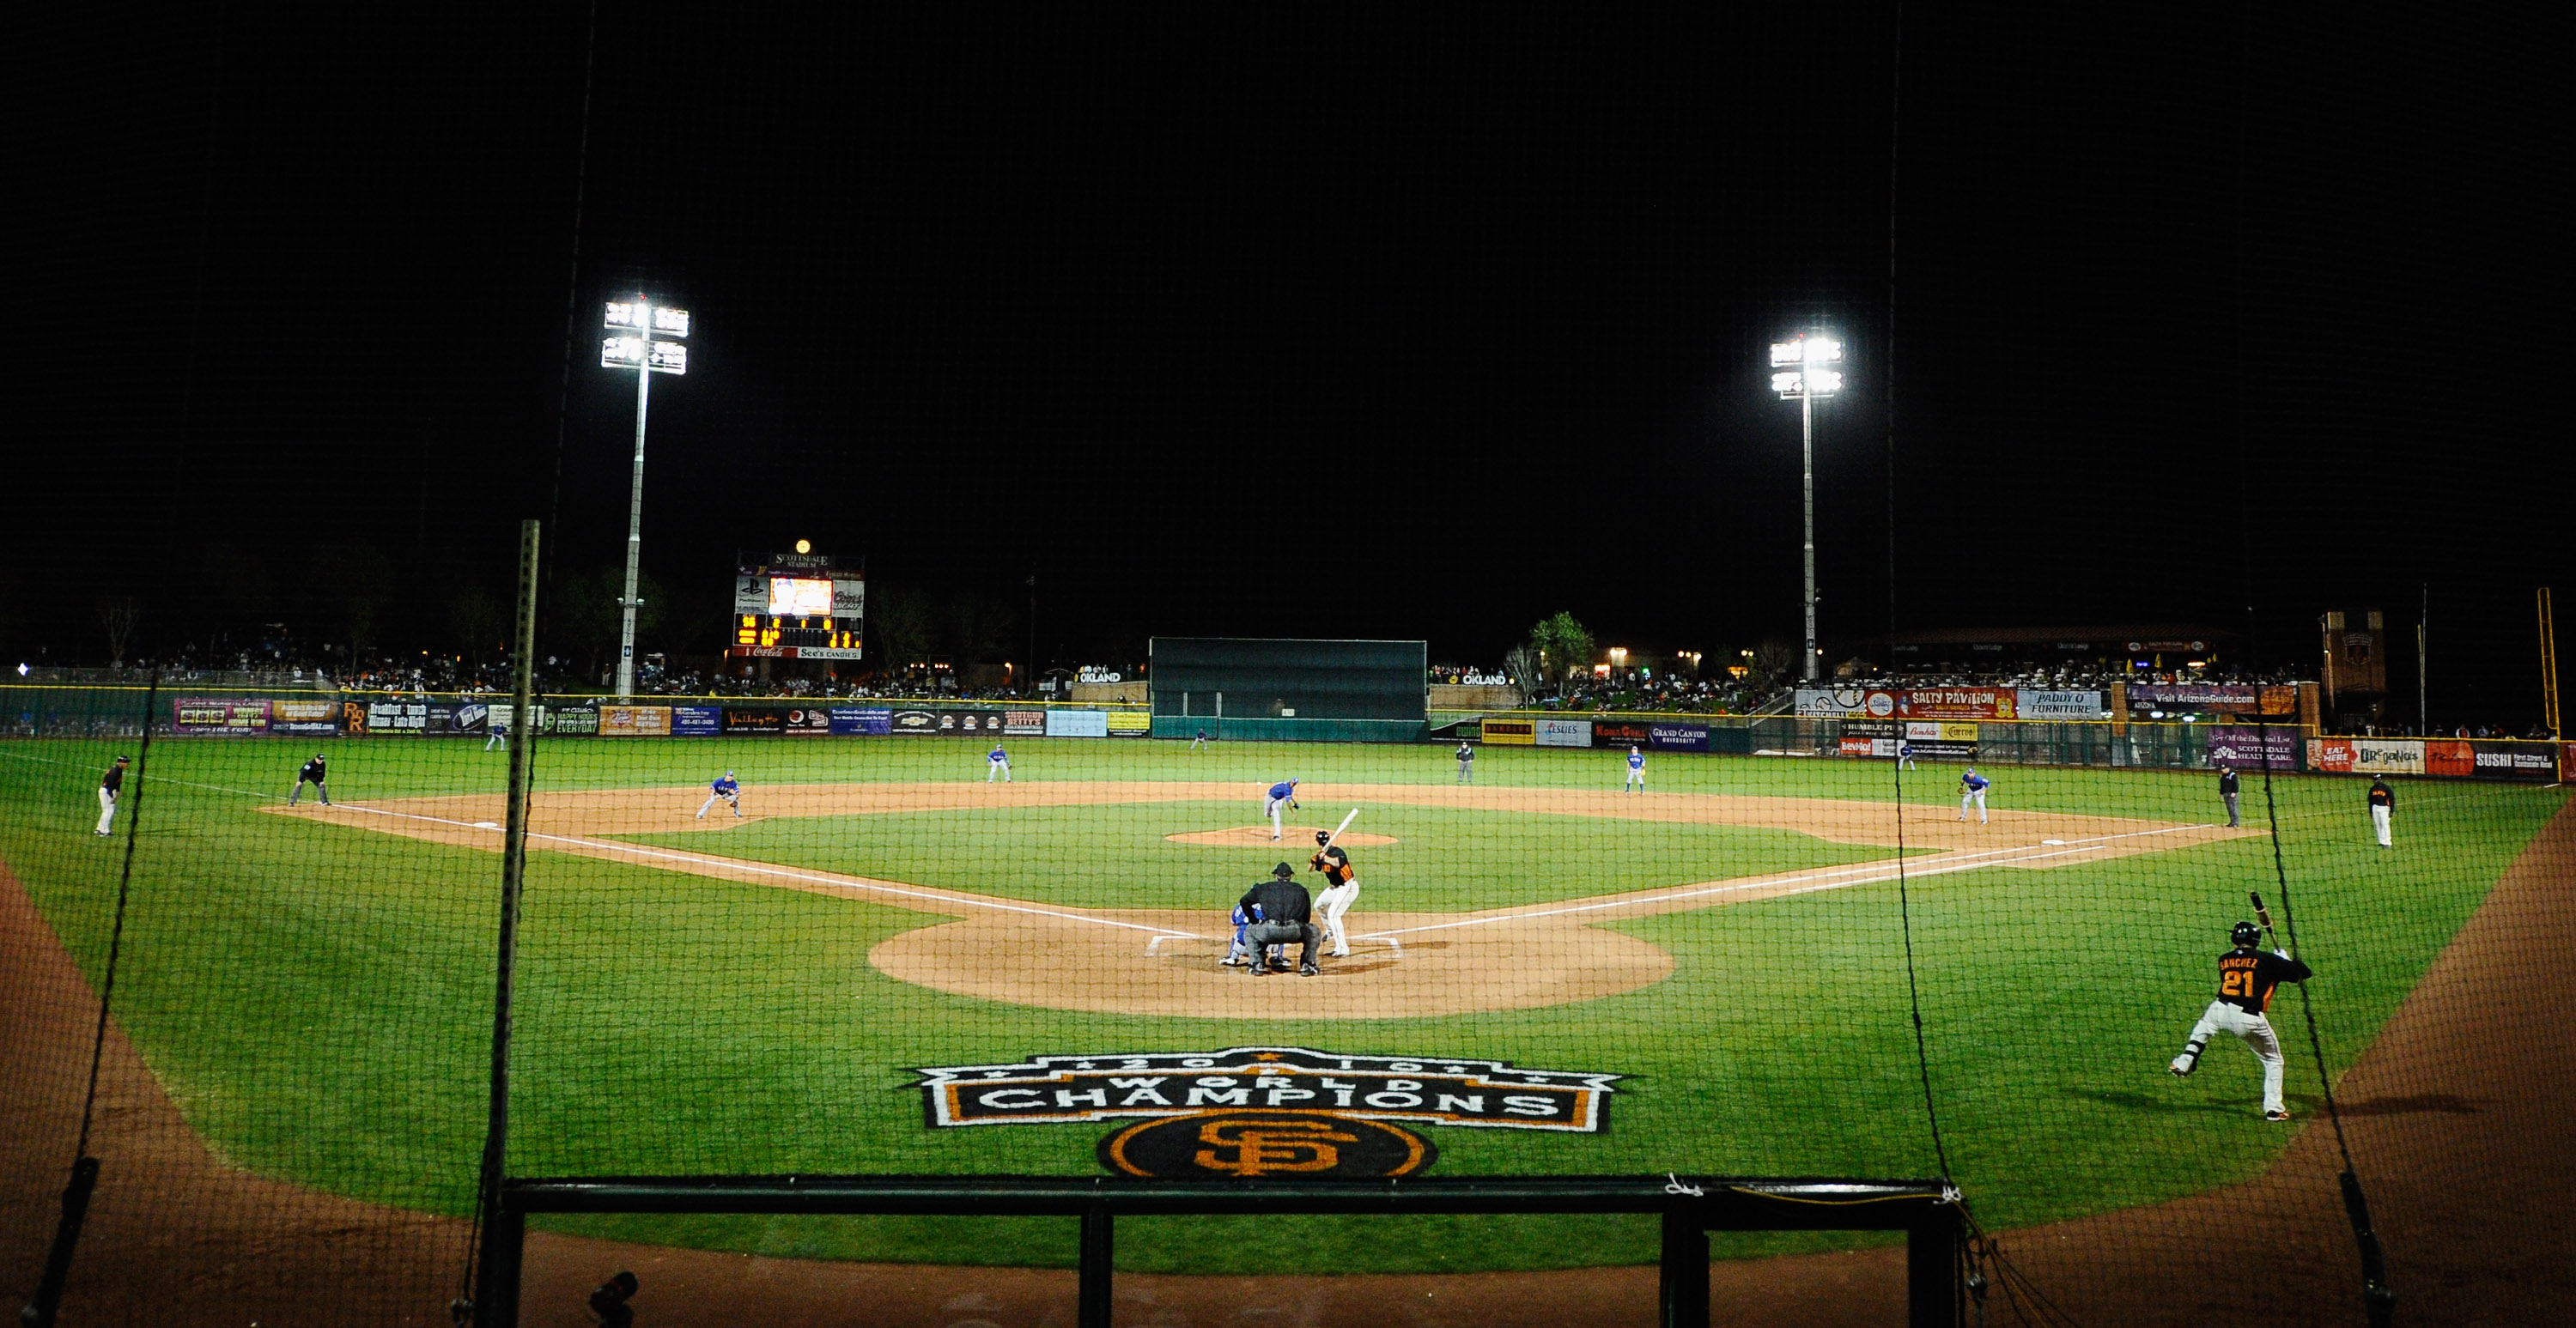 SCOTTSDALE, AZ - MARCH 07: San Francisco Giants take on the Texas Rangers in the first meeting between the two teams since the World Series during the spring training game at Scottsdale Stadium on March 7, 2011 in Scottsdale, Arizona.  (Photo by Kevork Dj